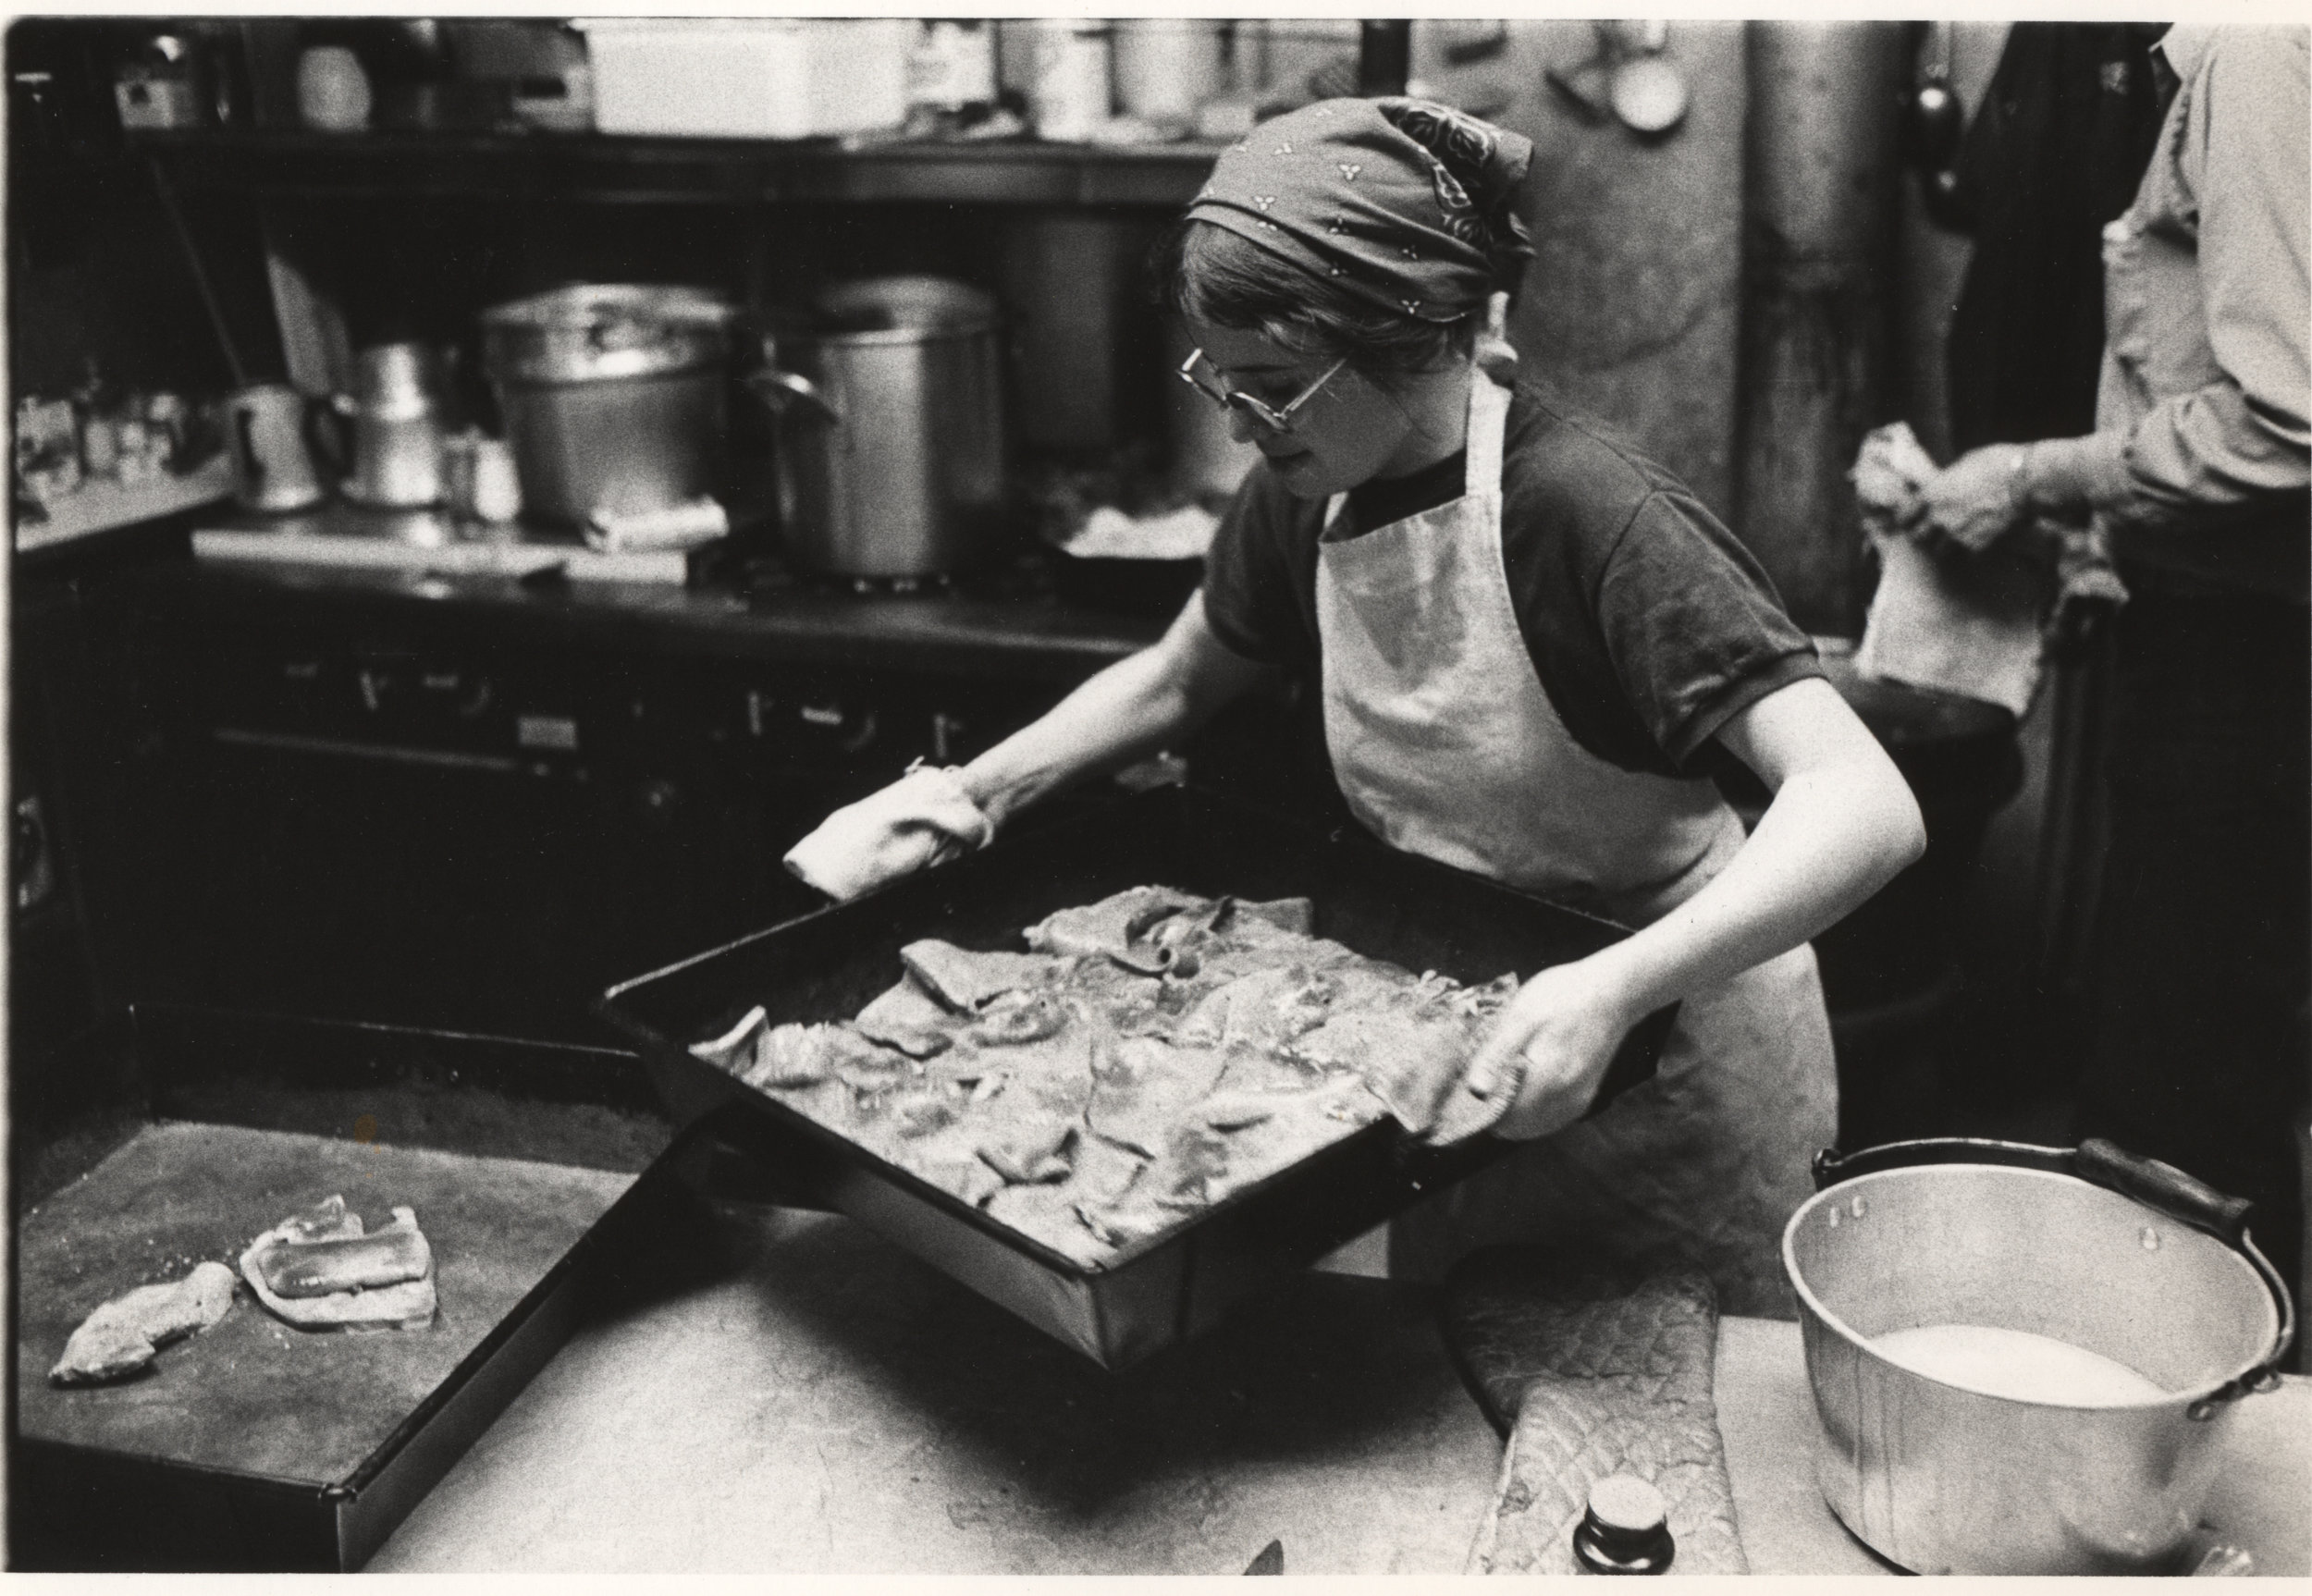 HOUSE OF HOSPITALITY kitchen woman makes lunch 1970s.jpg